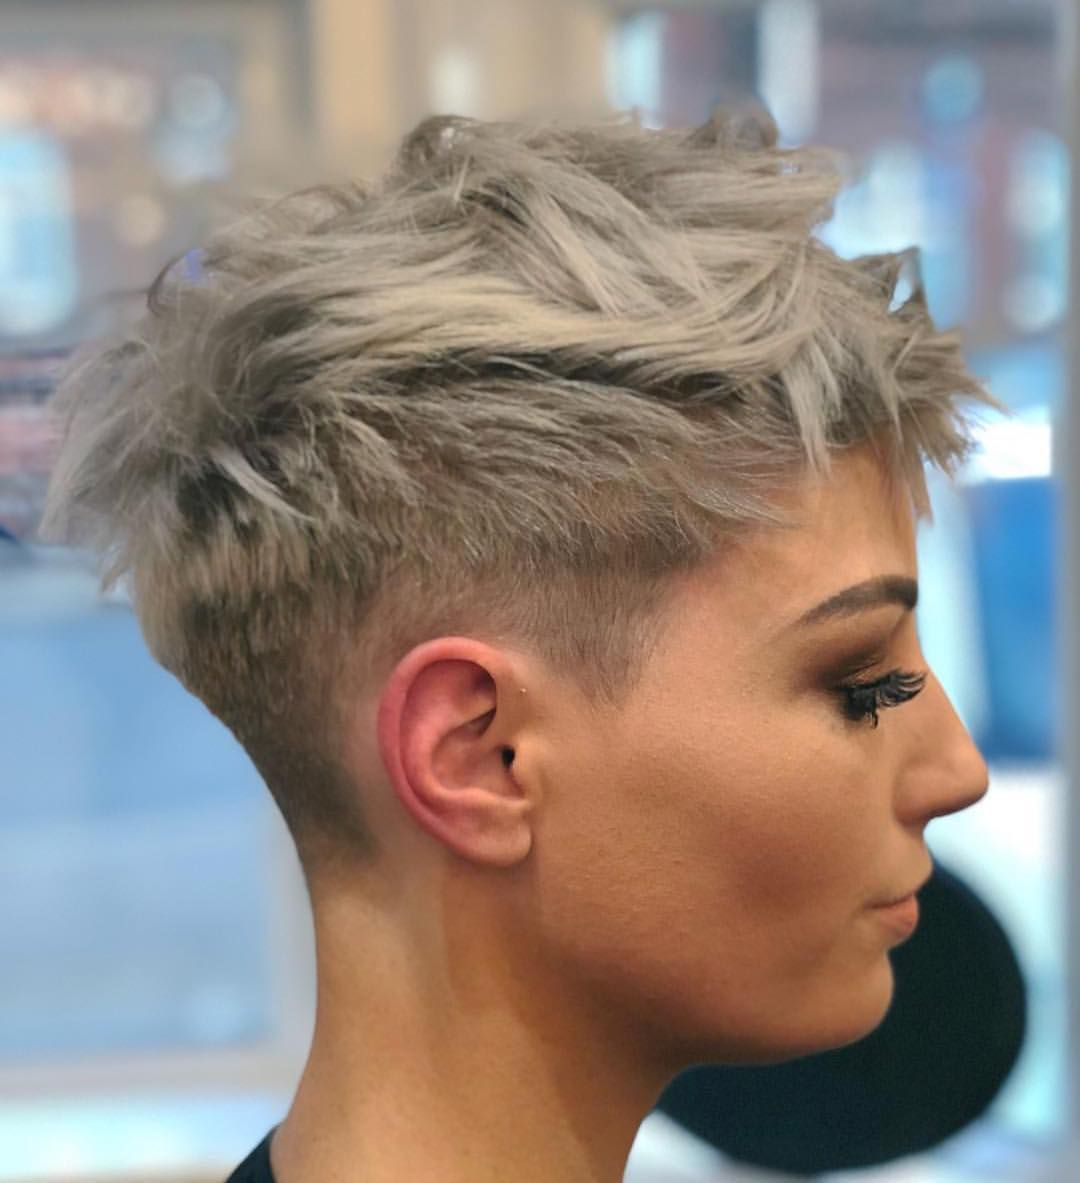 Short pixie hair cut inspiration #shortpixie